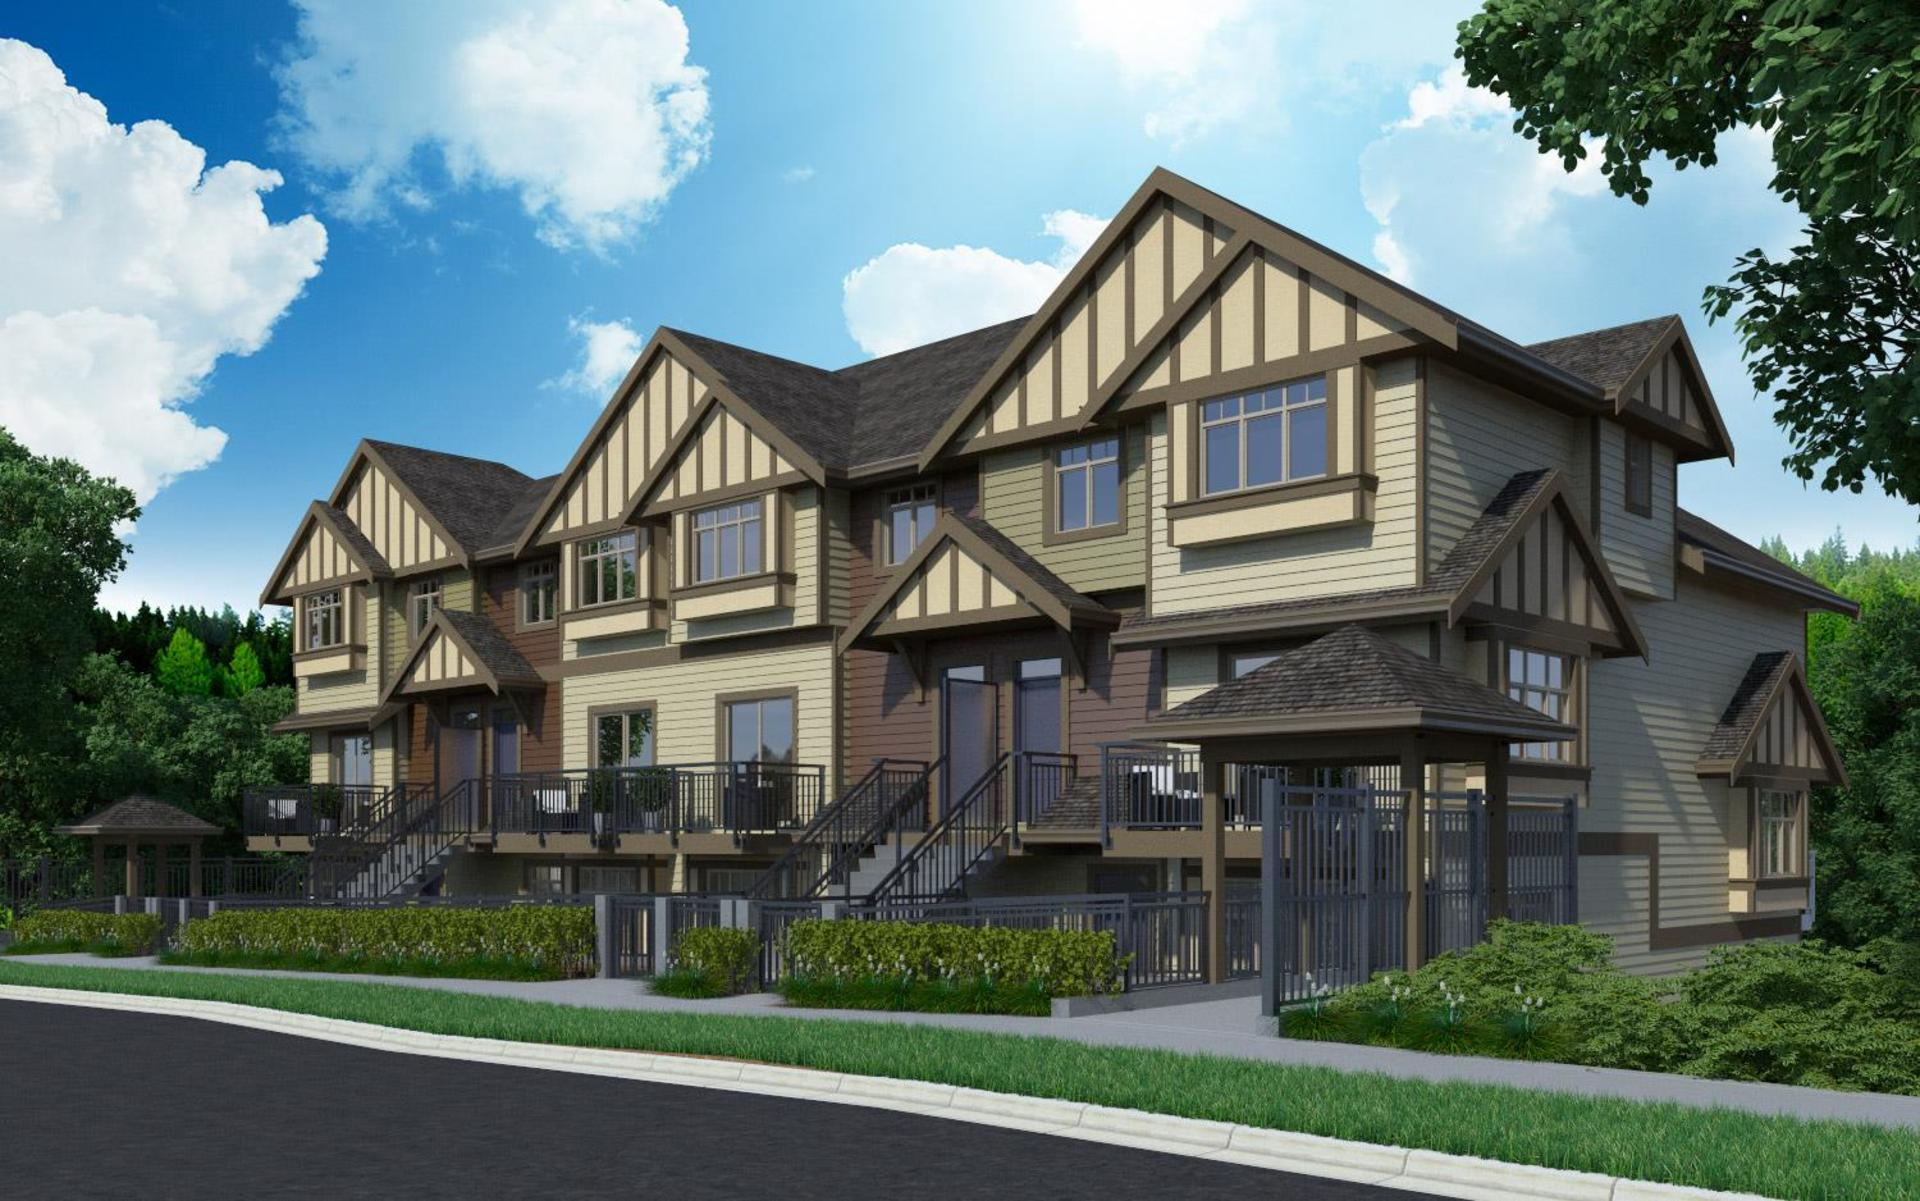 parkview_townhomes_burnaby_rendering at Parkview Townhomes (4033 Dominion Street, Brentwood Park, Burnaby North)